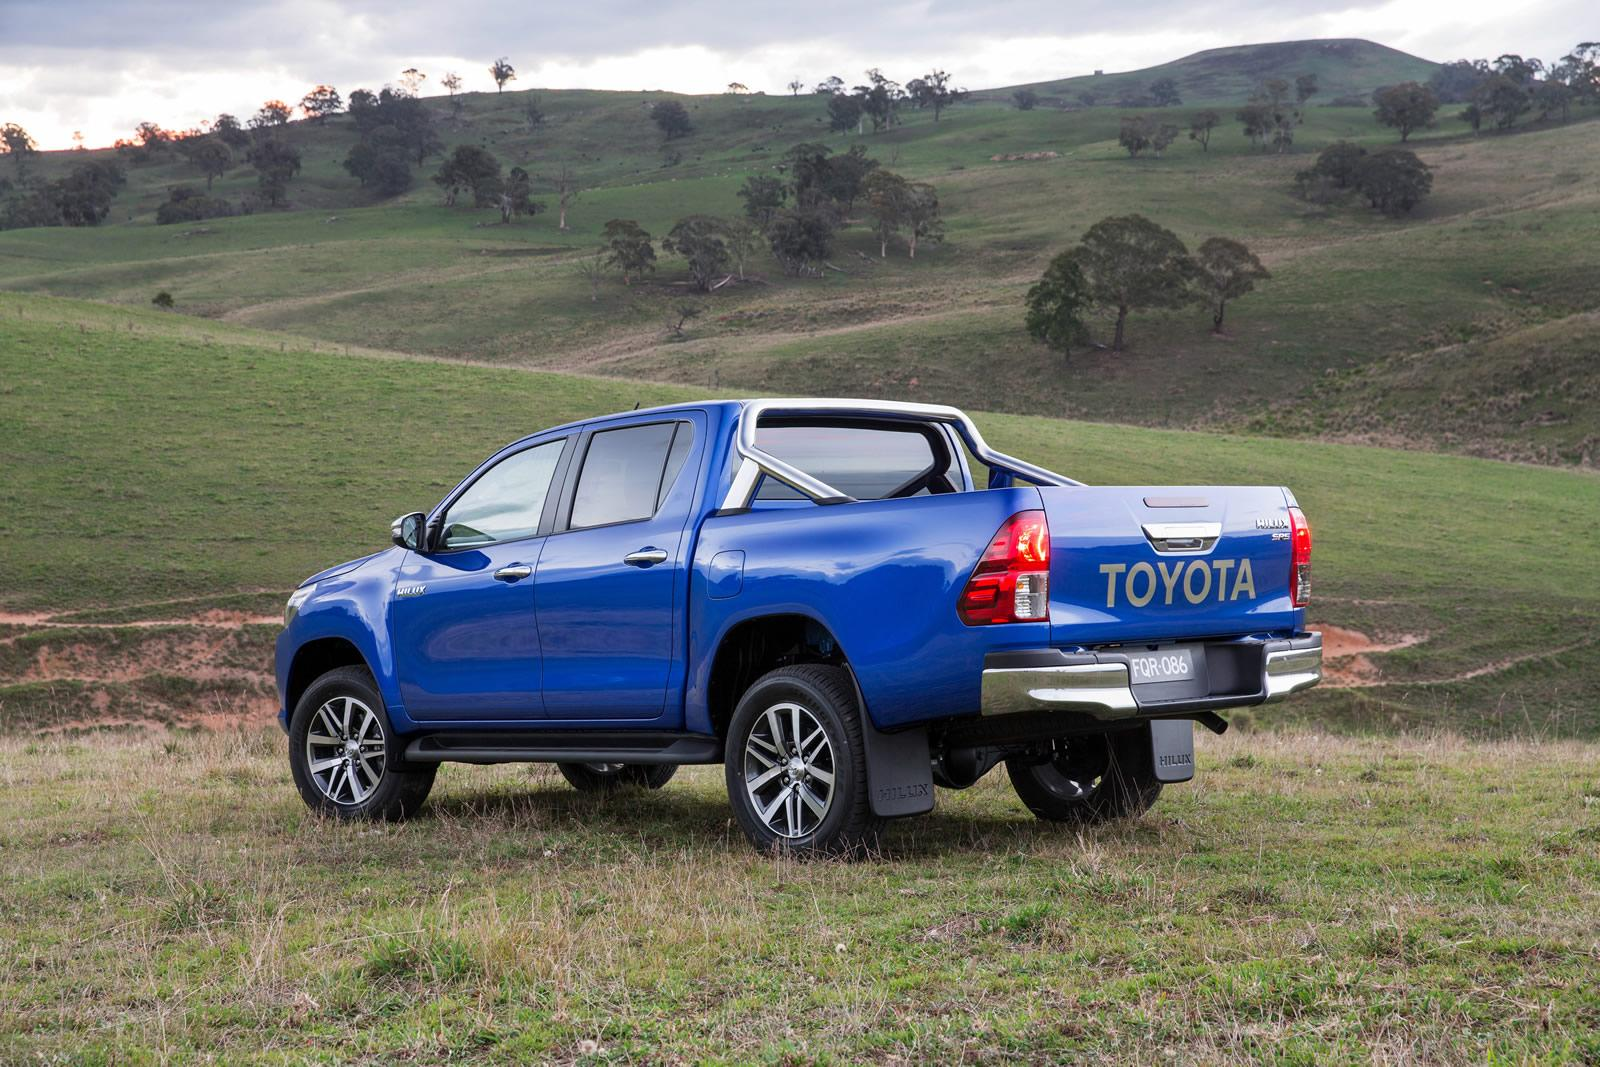 2019 Toyota Hilux photo - 5